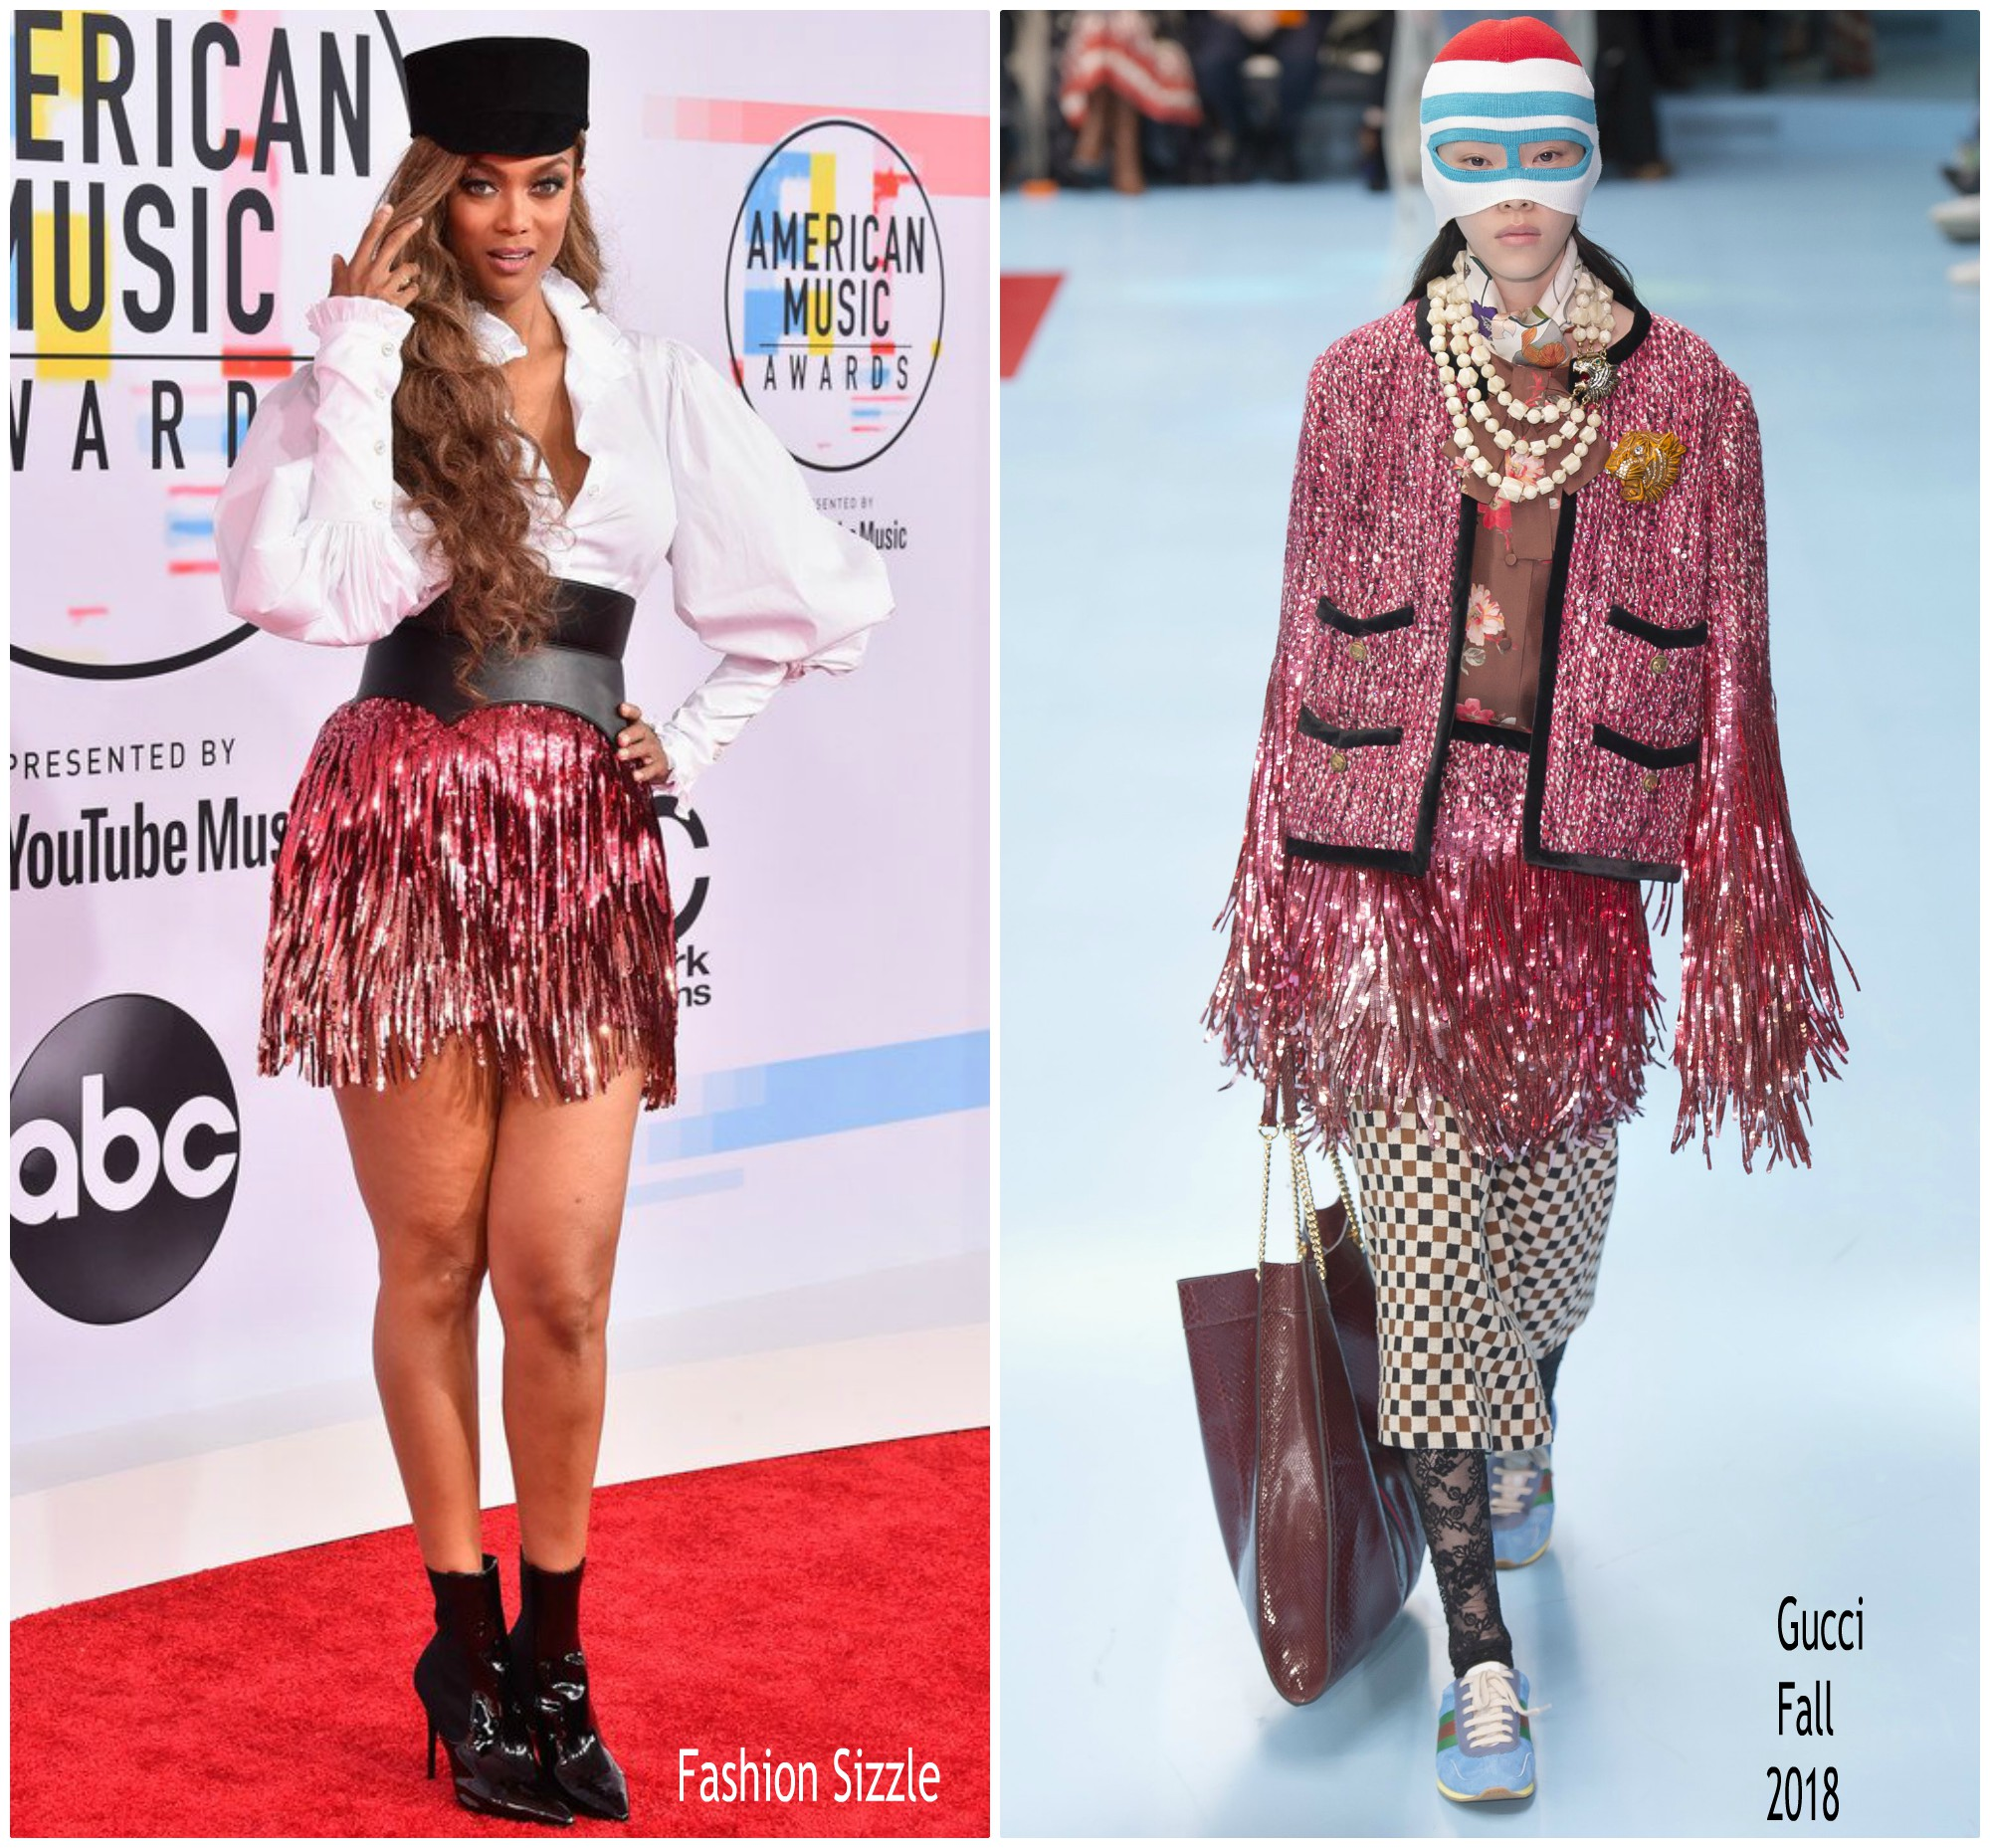 Tyra Banks Awards: Tyra Banks In Gucci @ 2018 American Music Awards